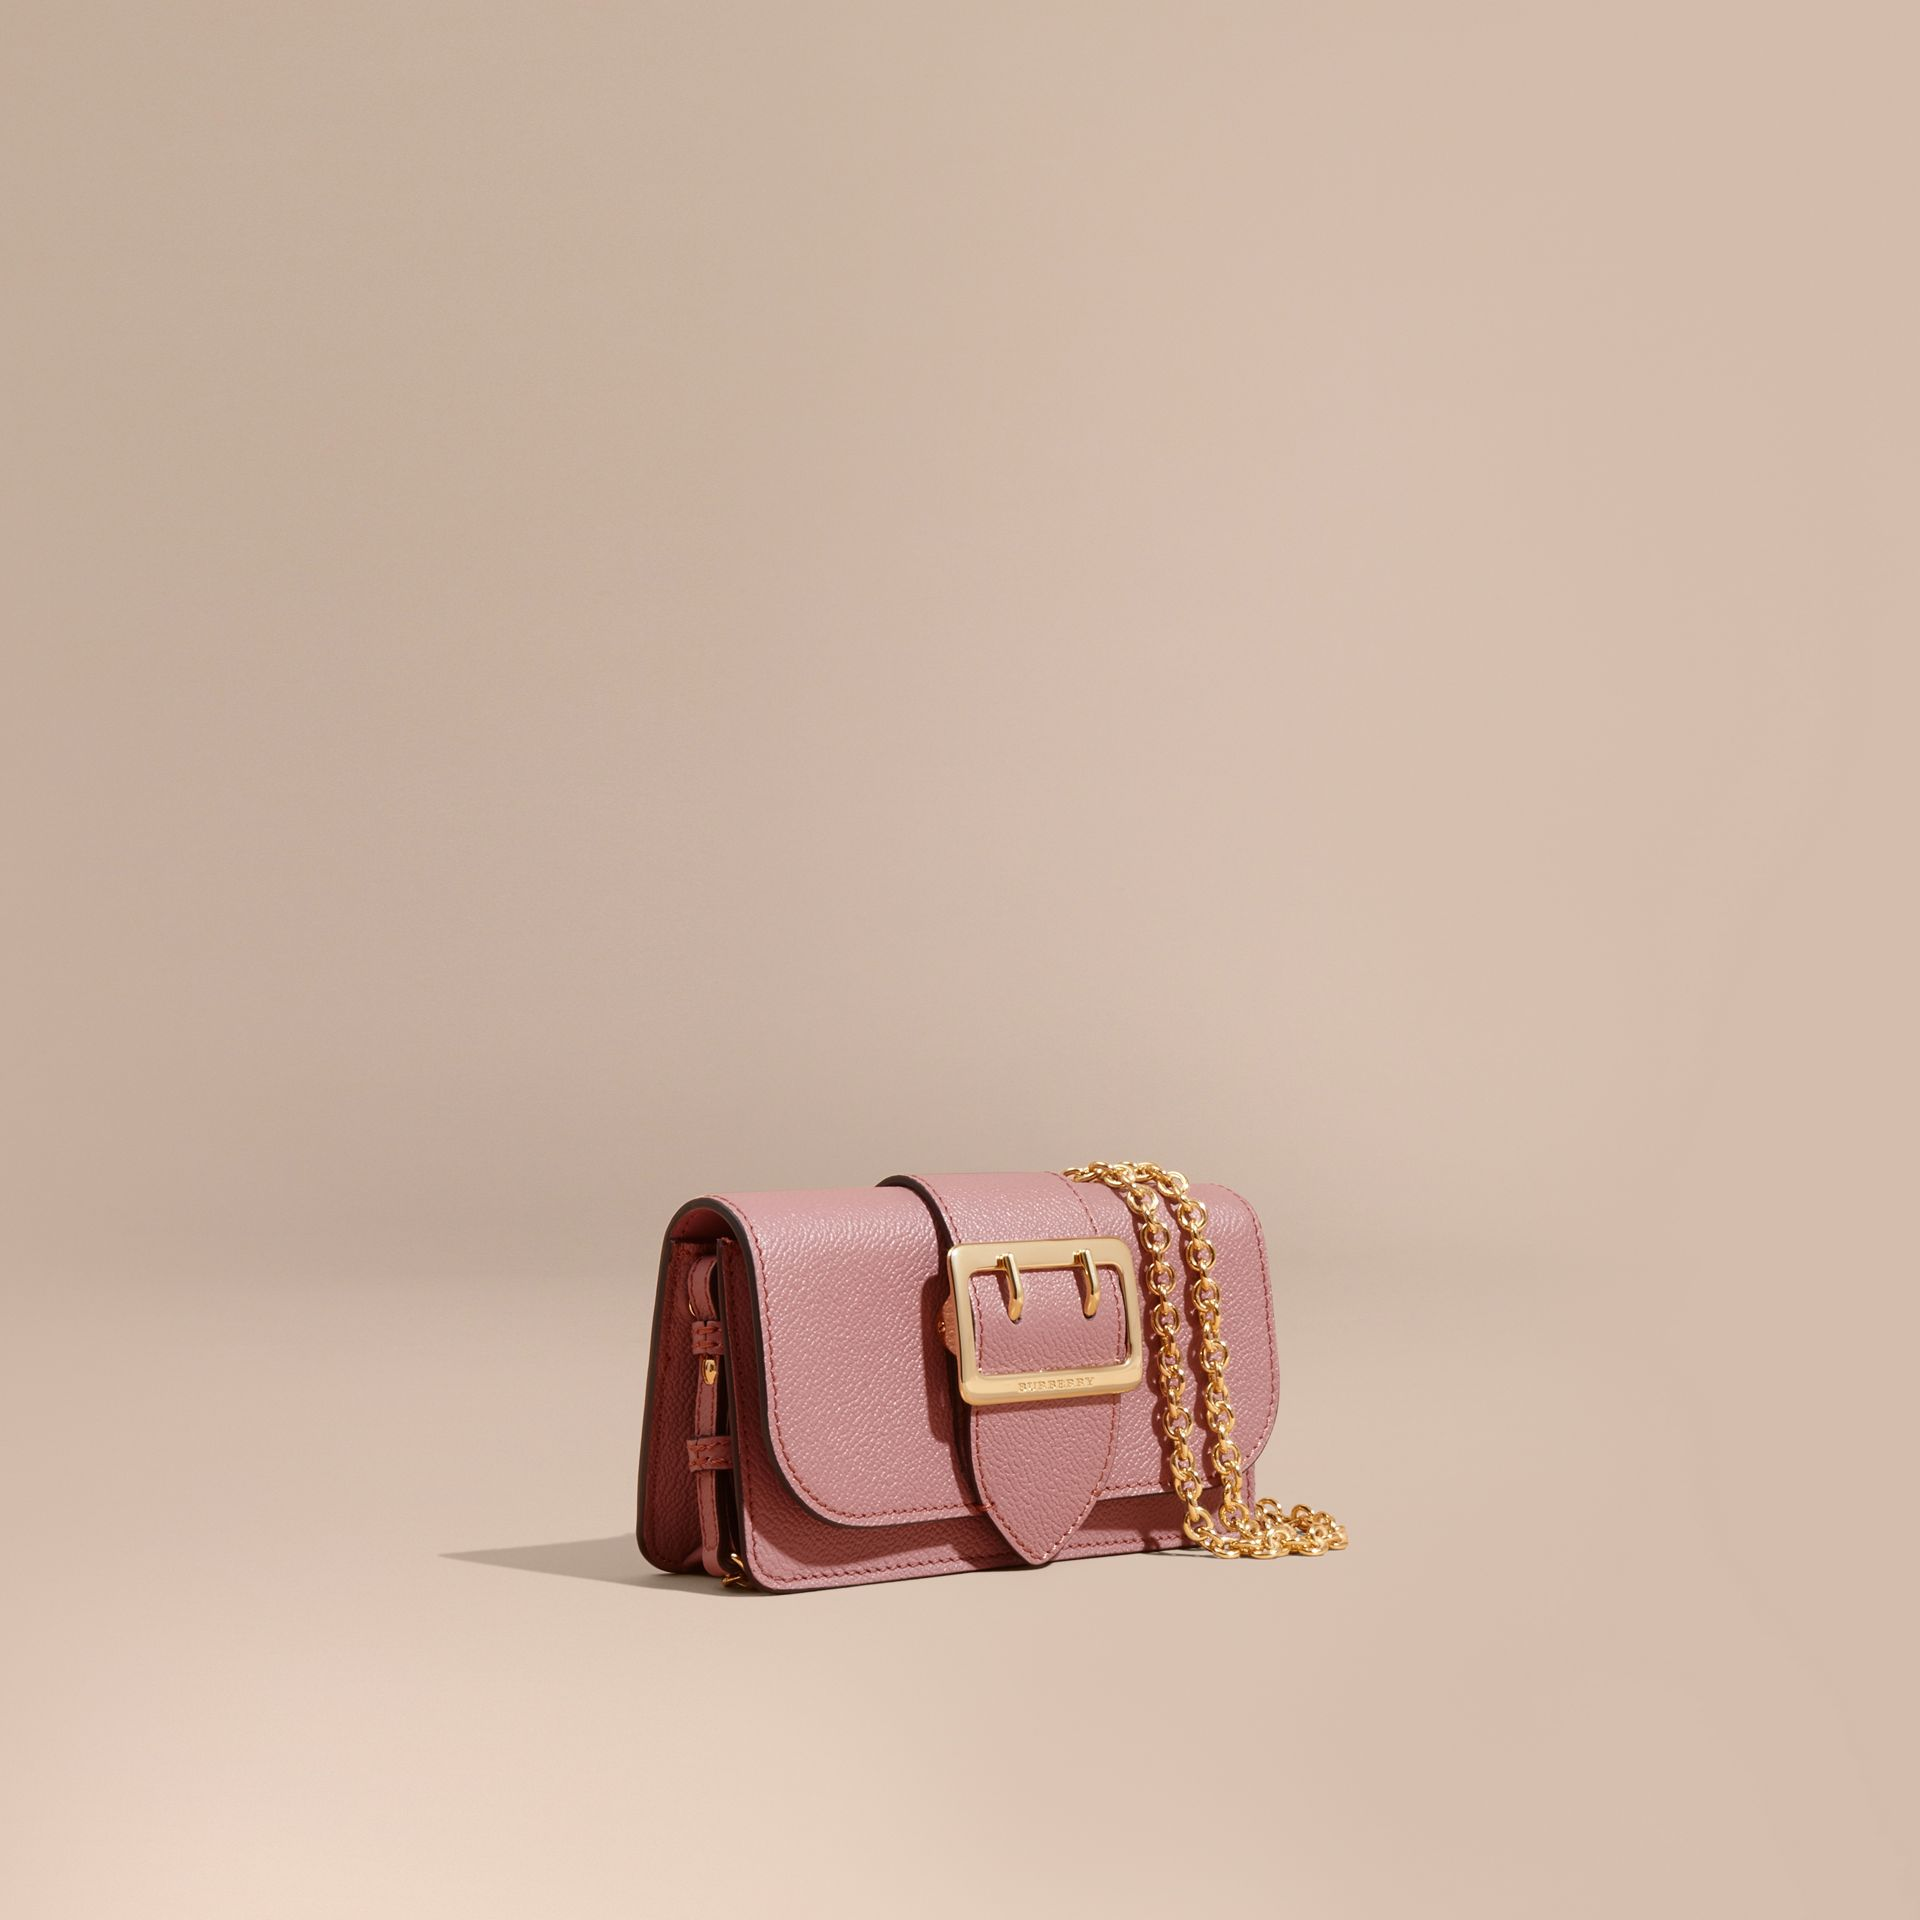 The Mini Buckle Bag in Grainy Leather in Dusty Pink - Women | Burberry Singapore - gallery image 1